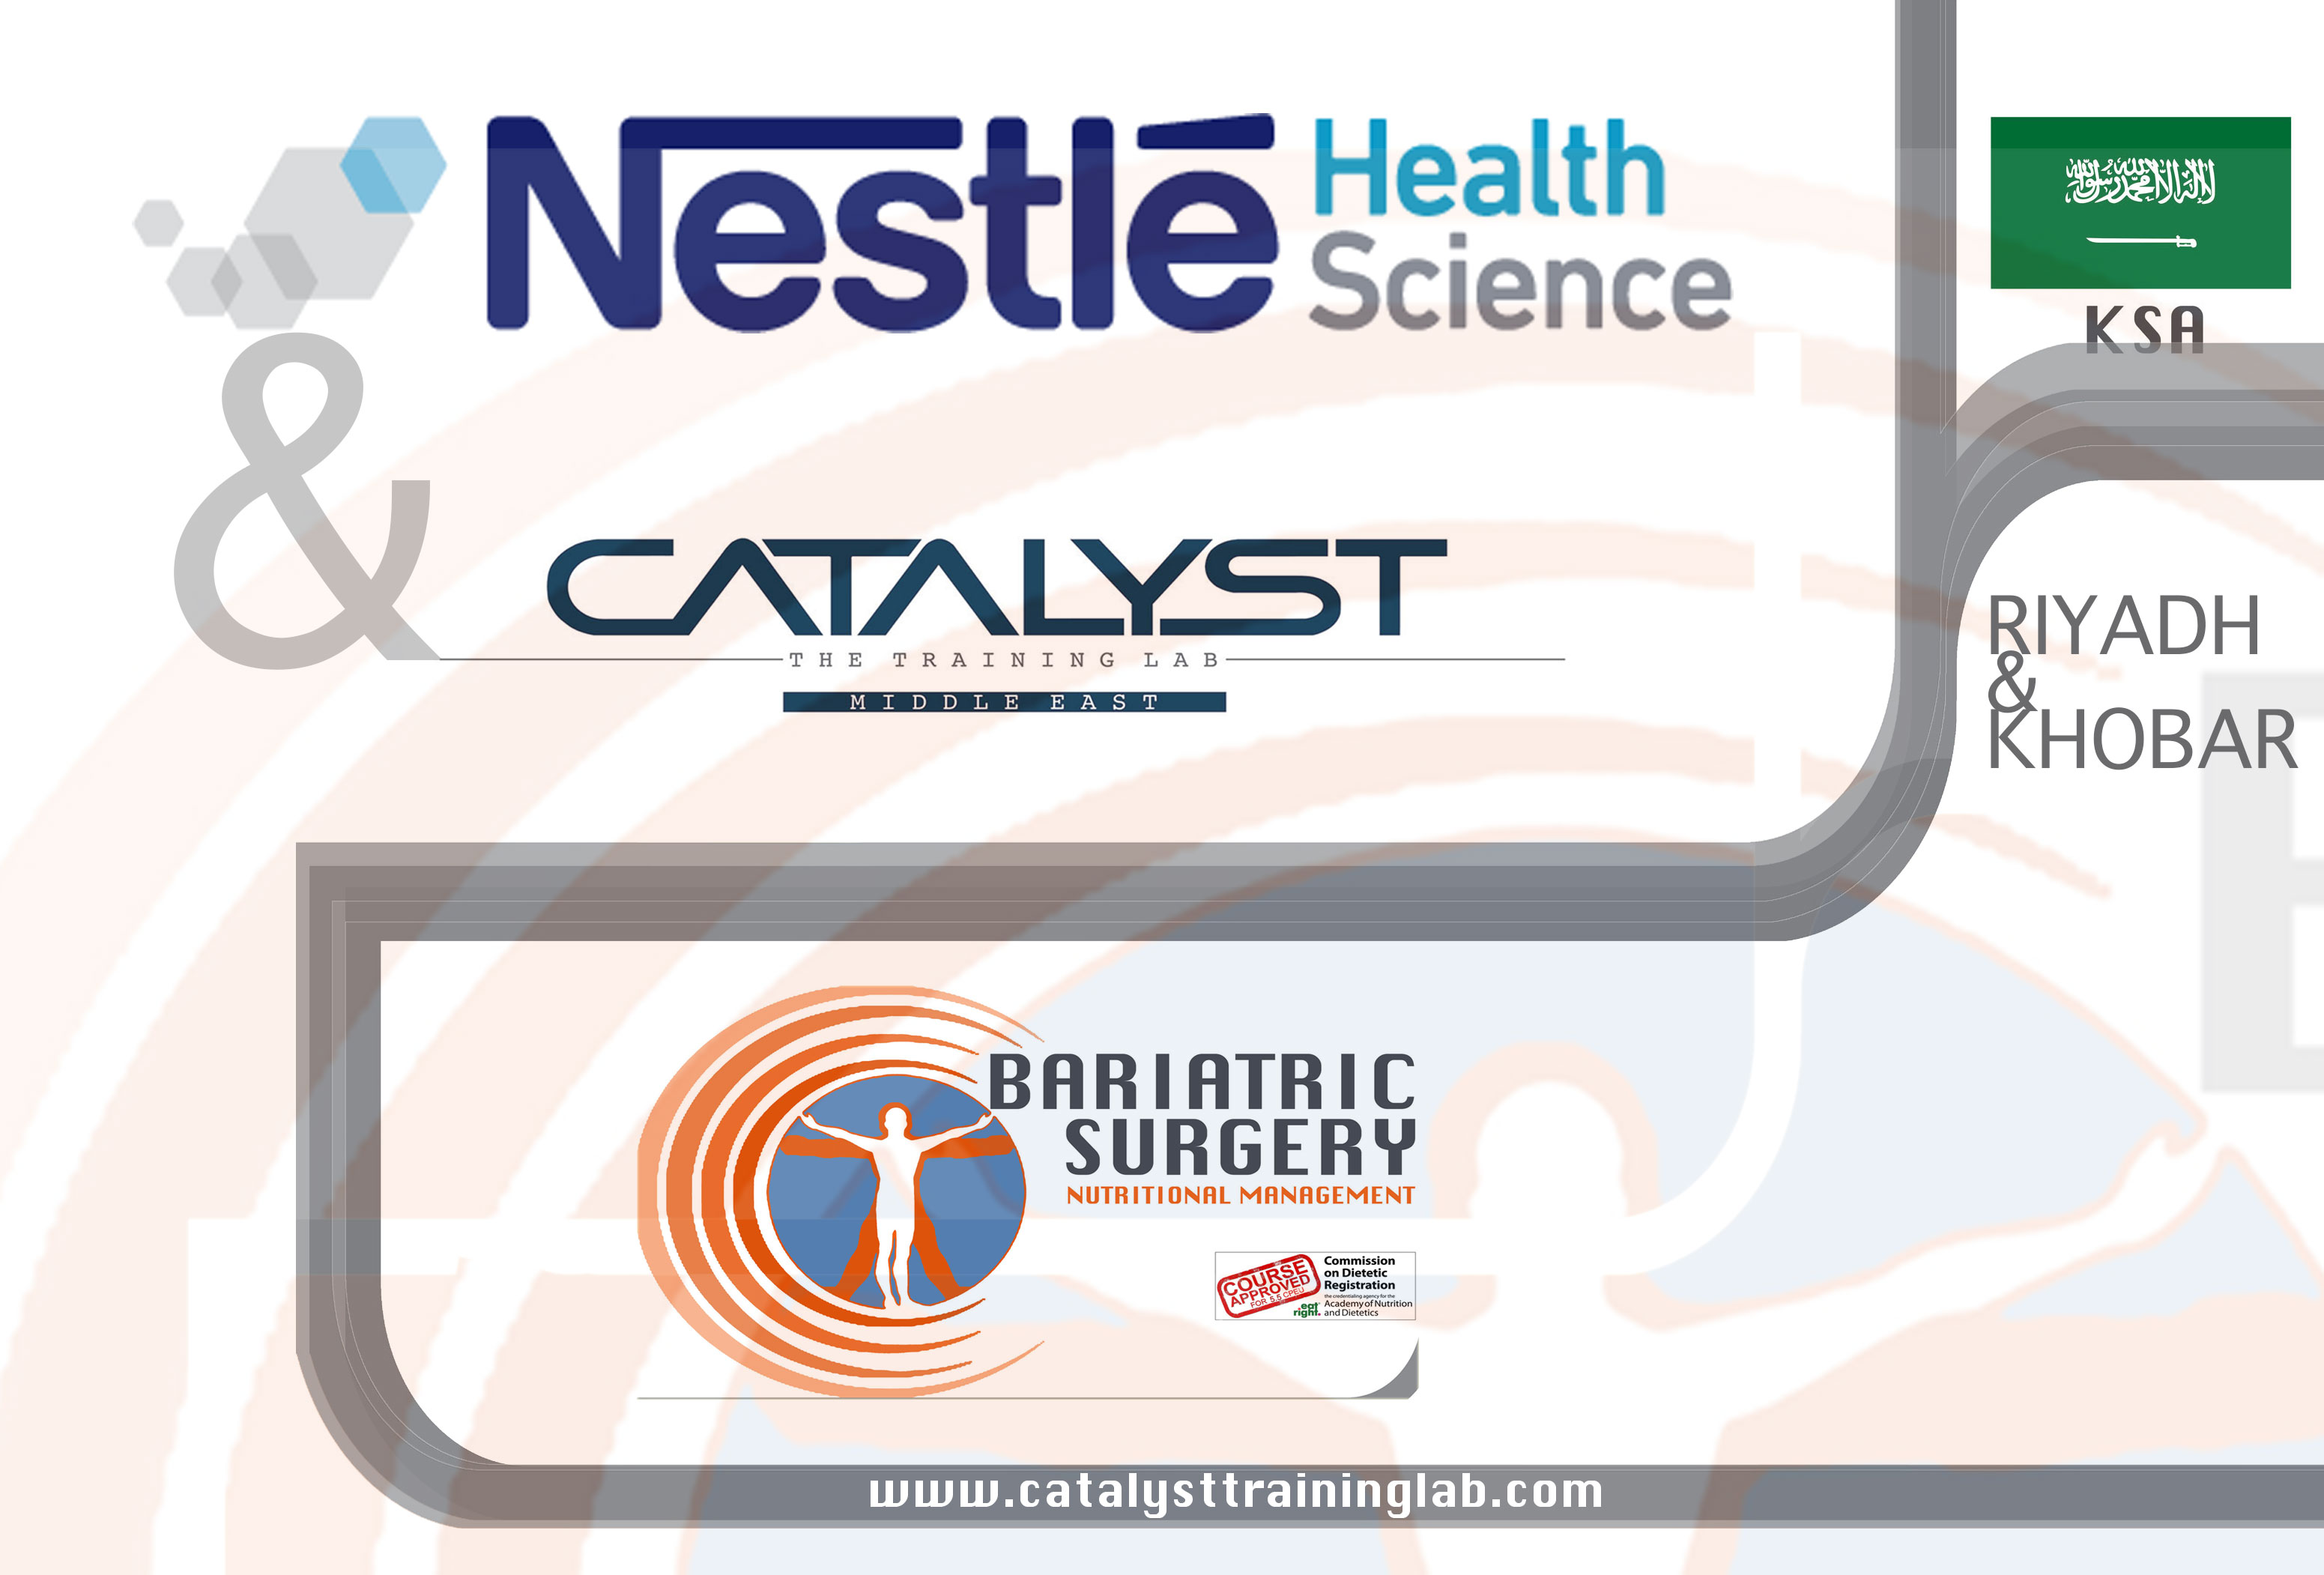 CATALYST in Partnership with NHS